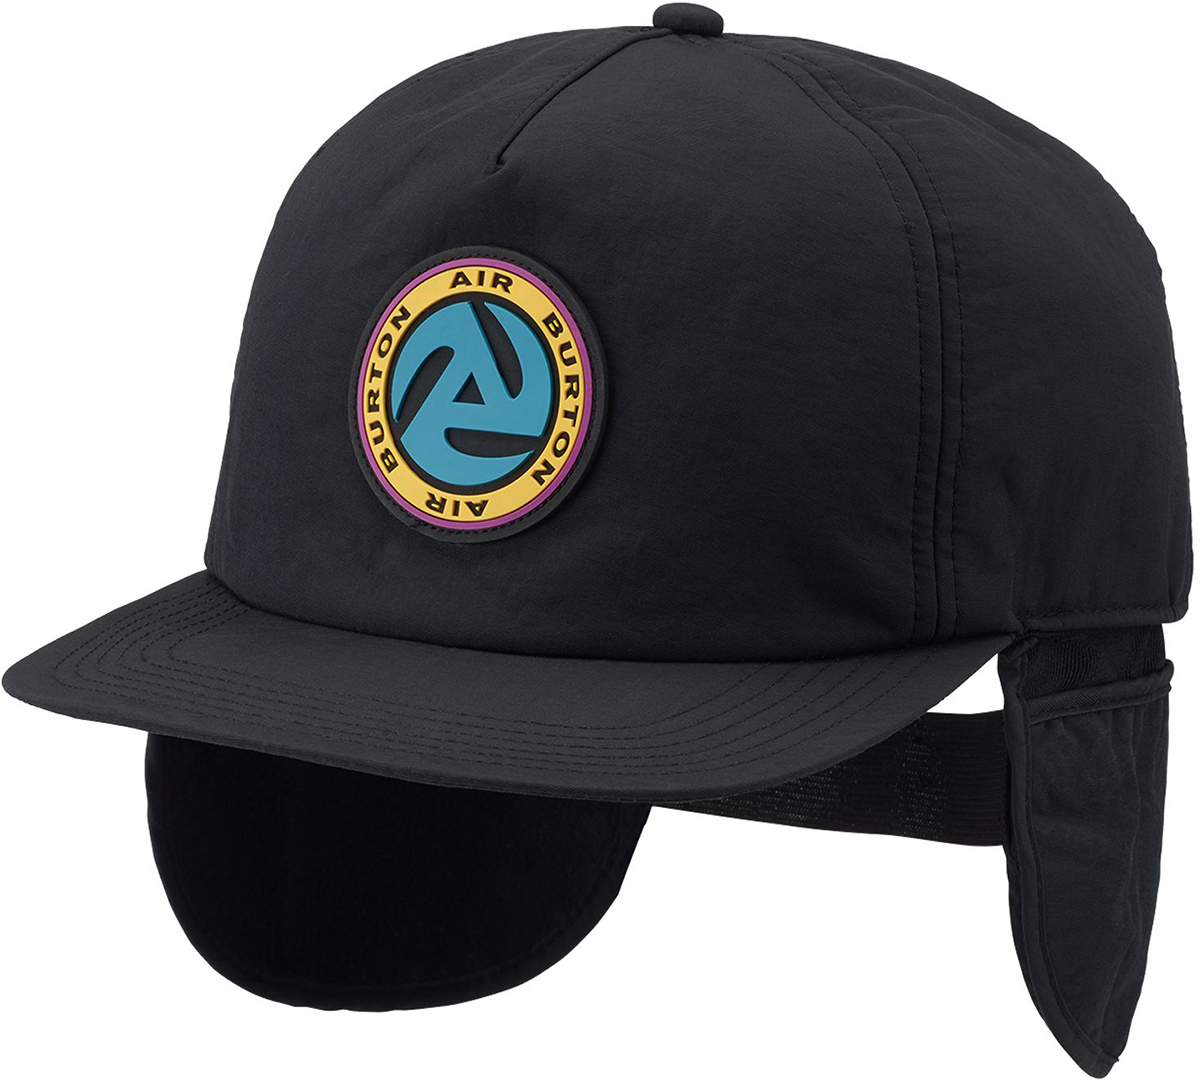 a6de1d26f98 RETRO Cap 2019 true black. BURTON